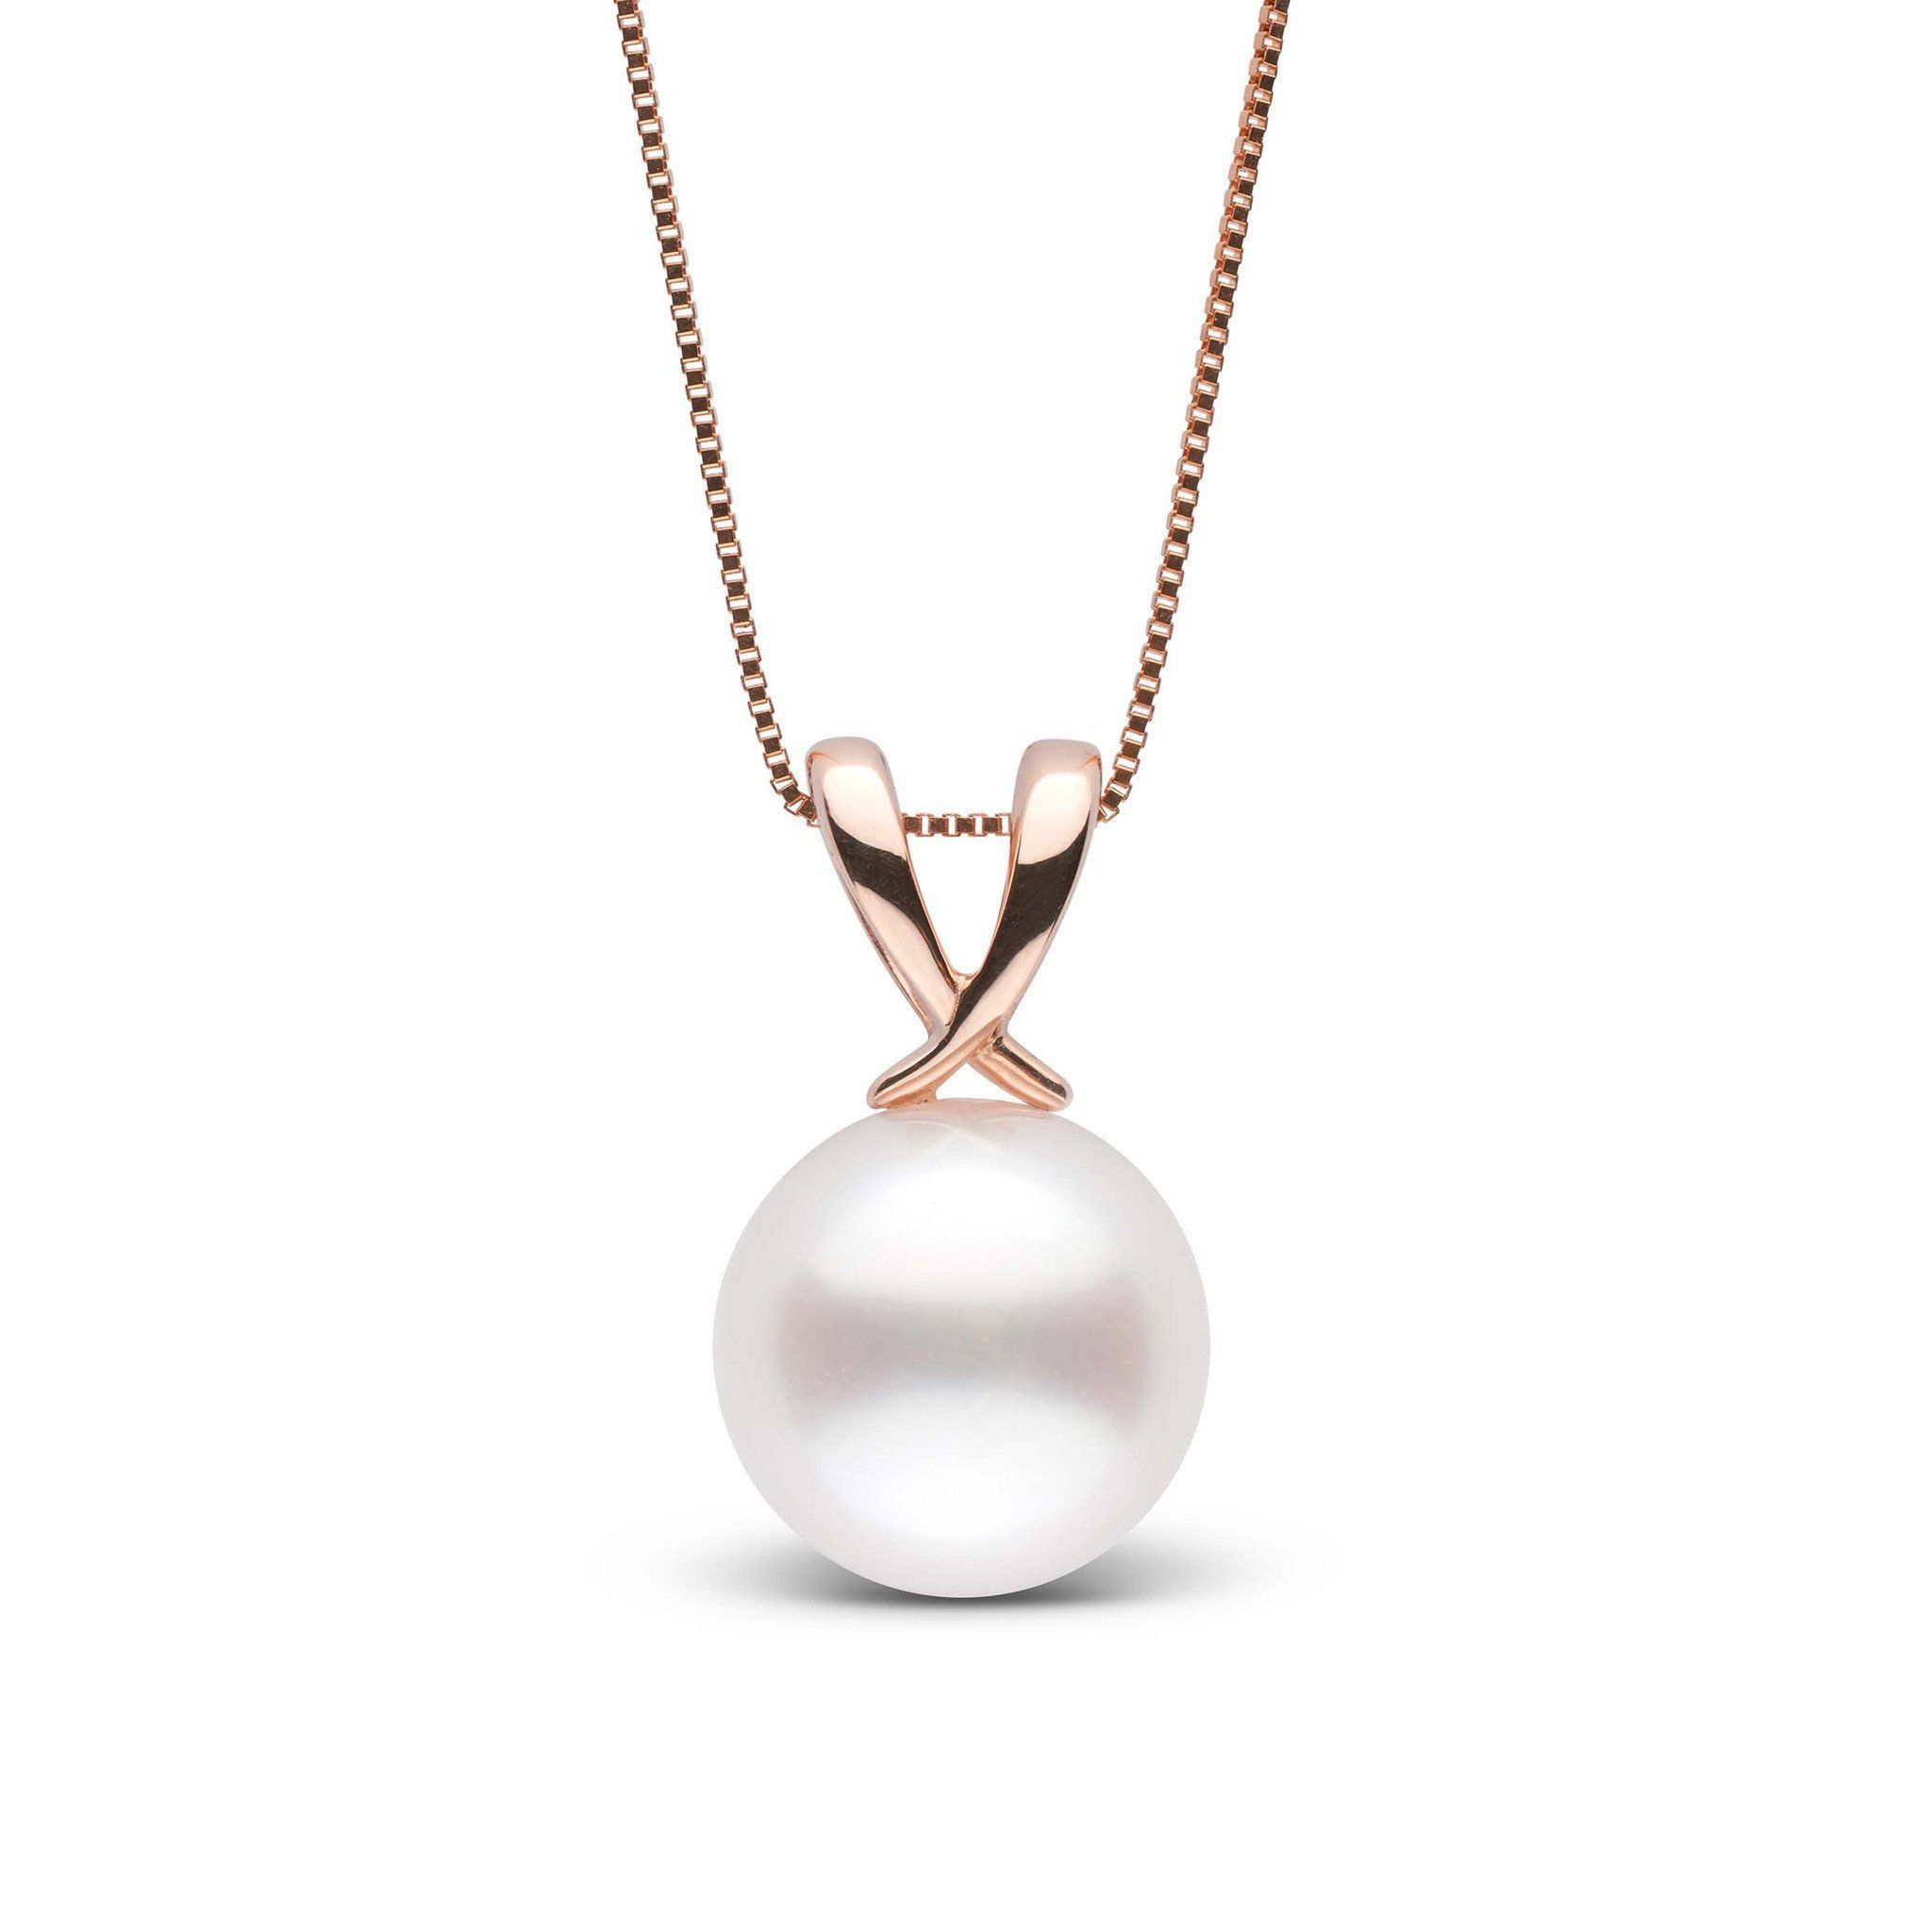 Ribbon Collection 10.0-11.0 mm White South Sea Pearl Pendant